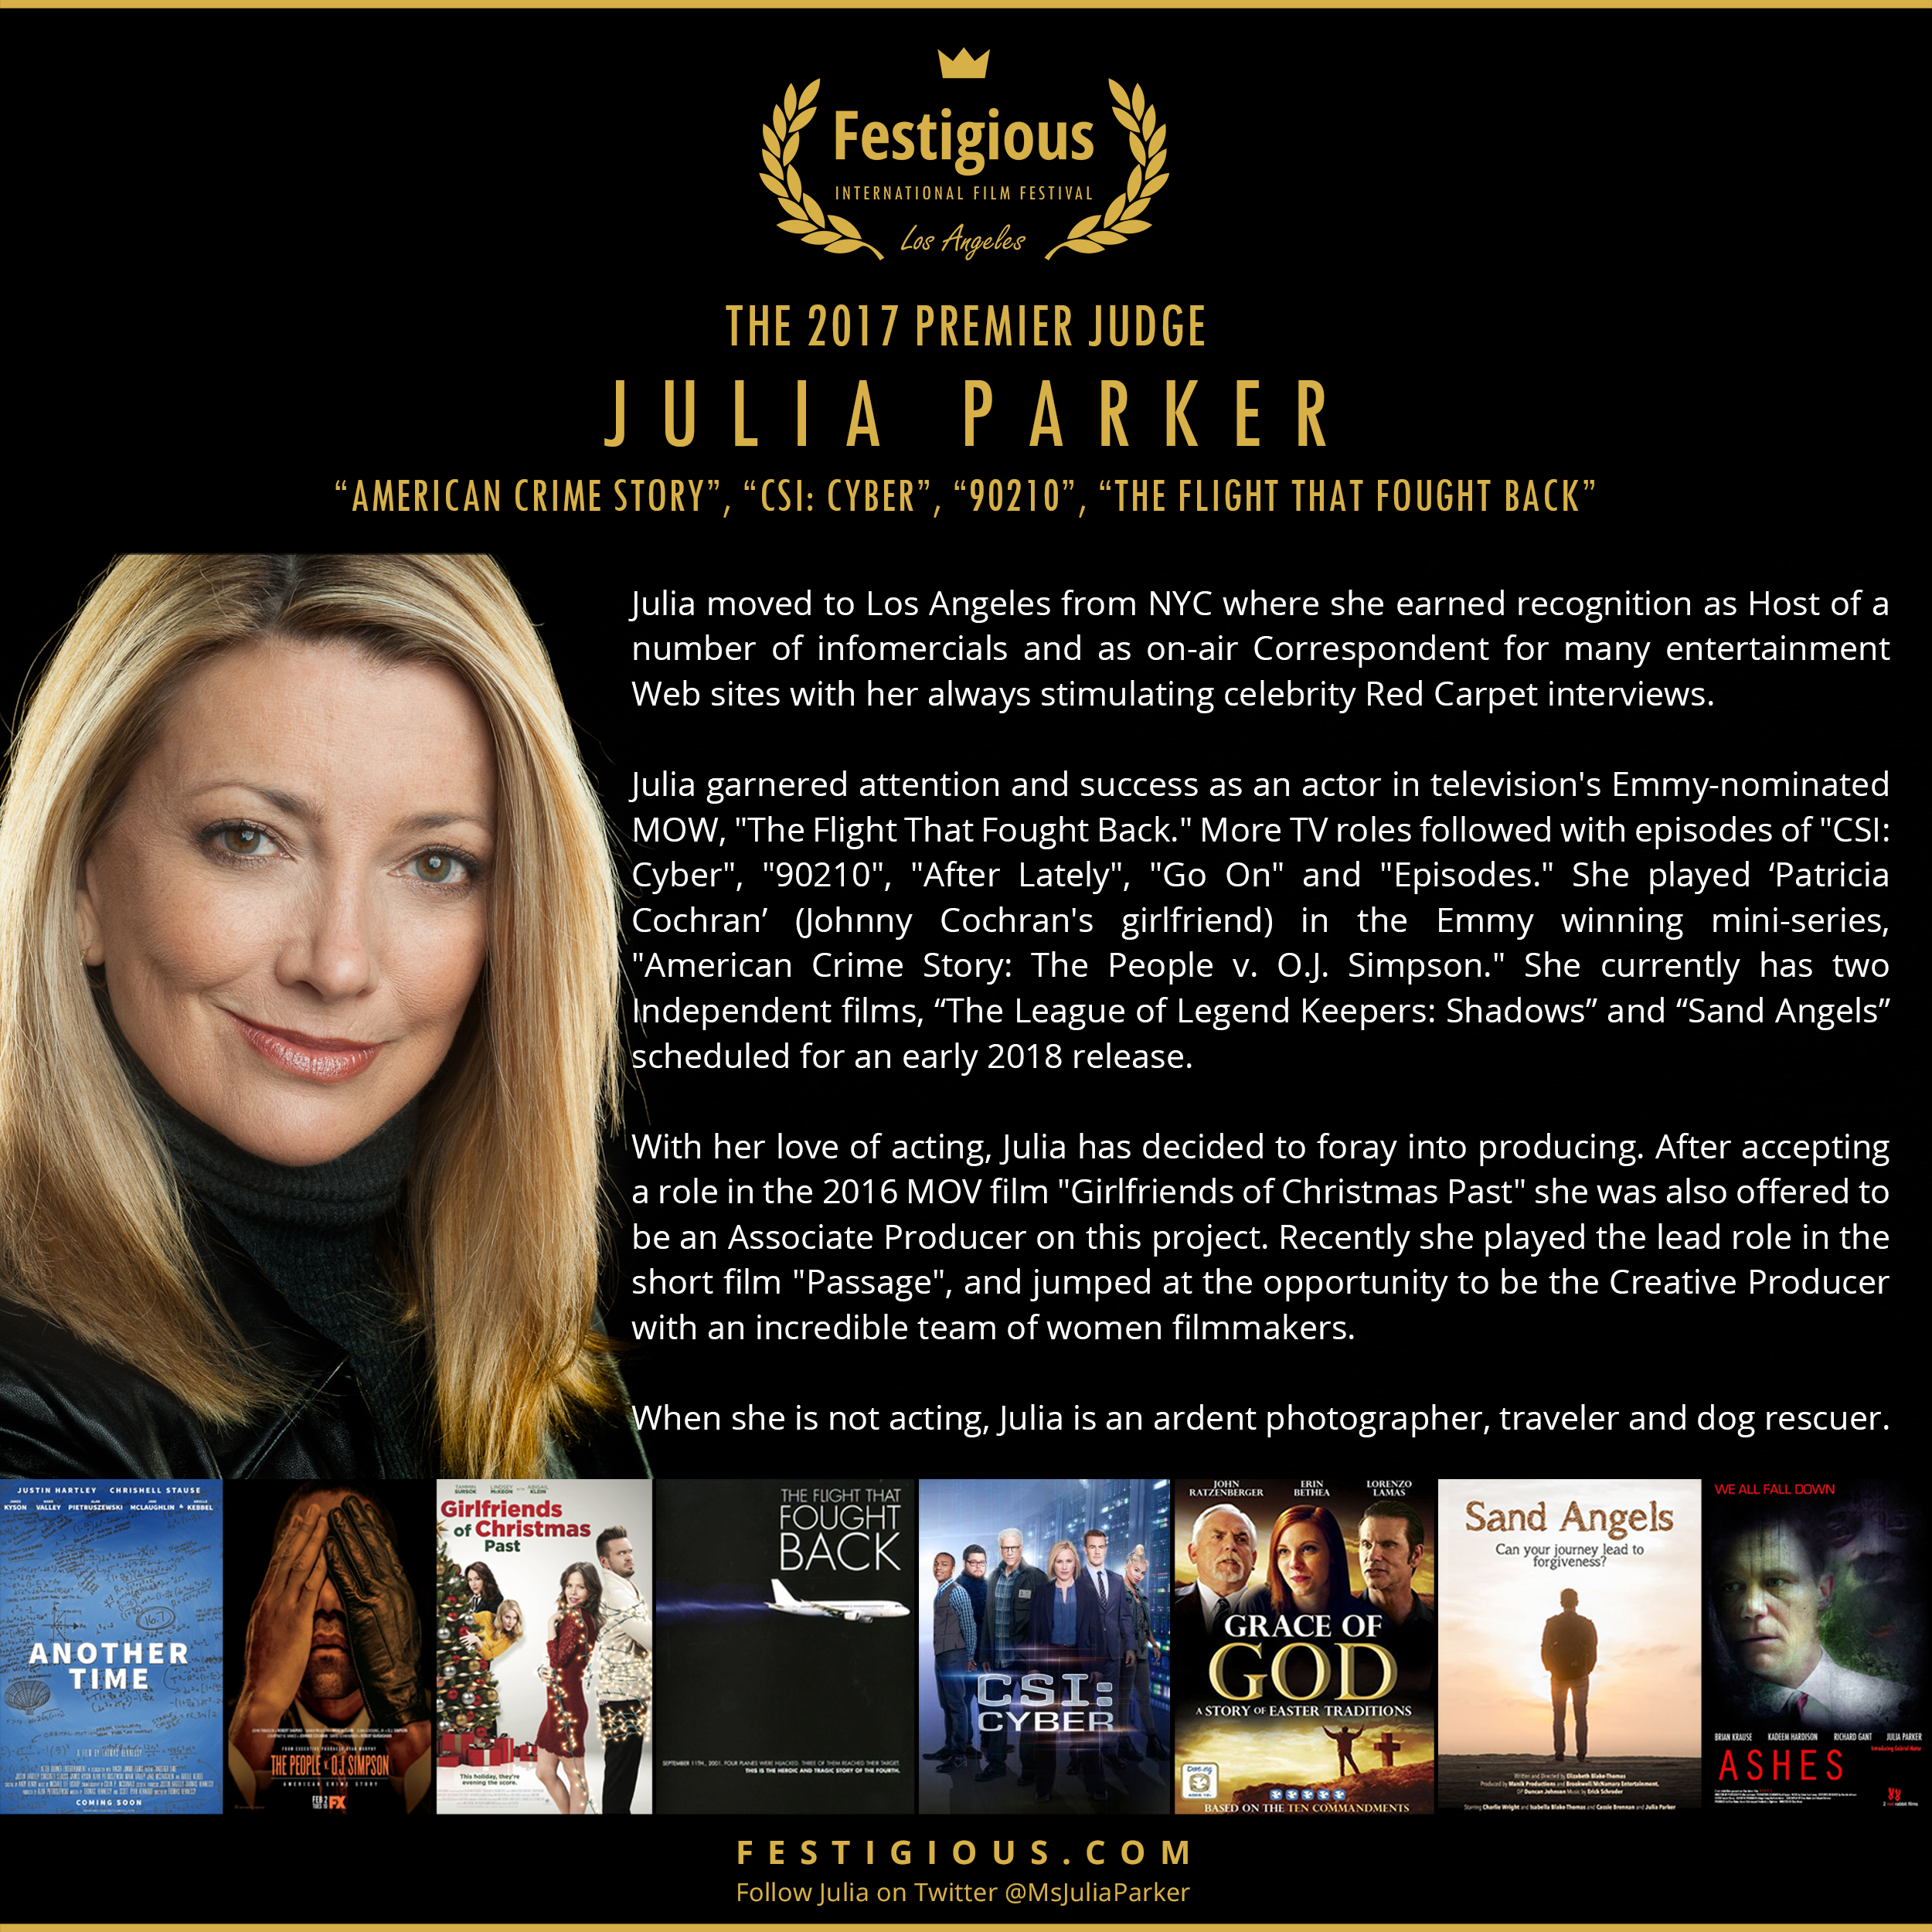 Premier Judge 2017 - Julia Parker